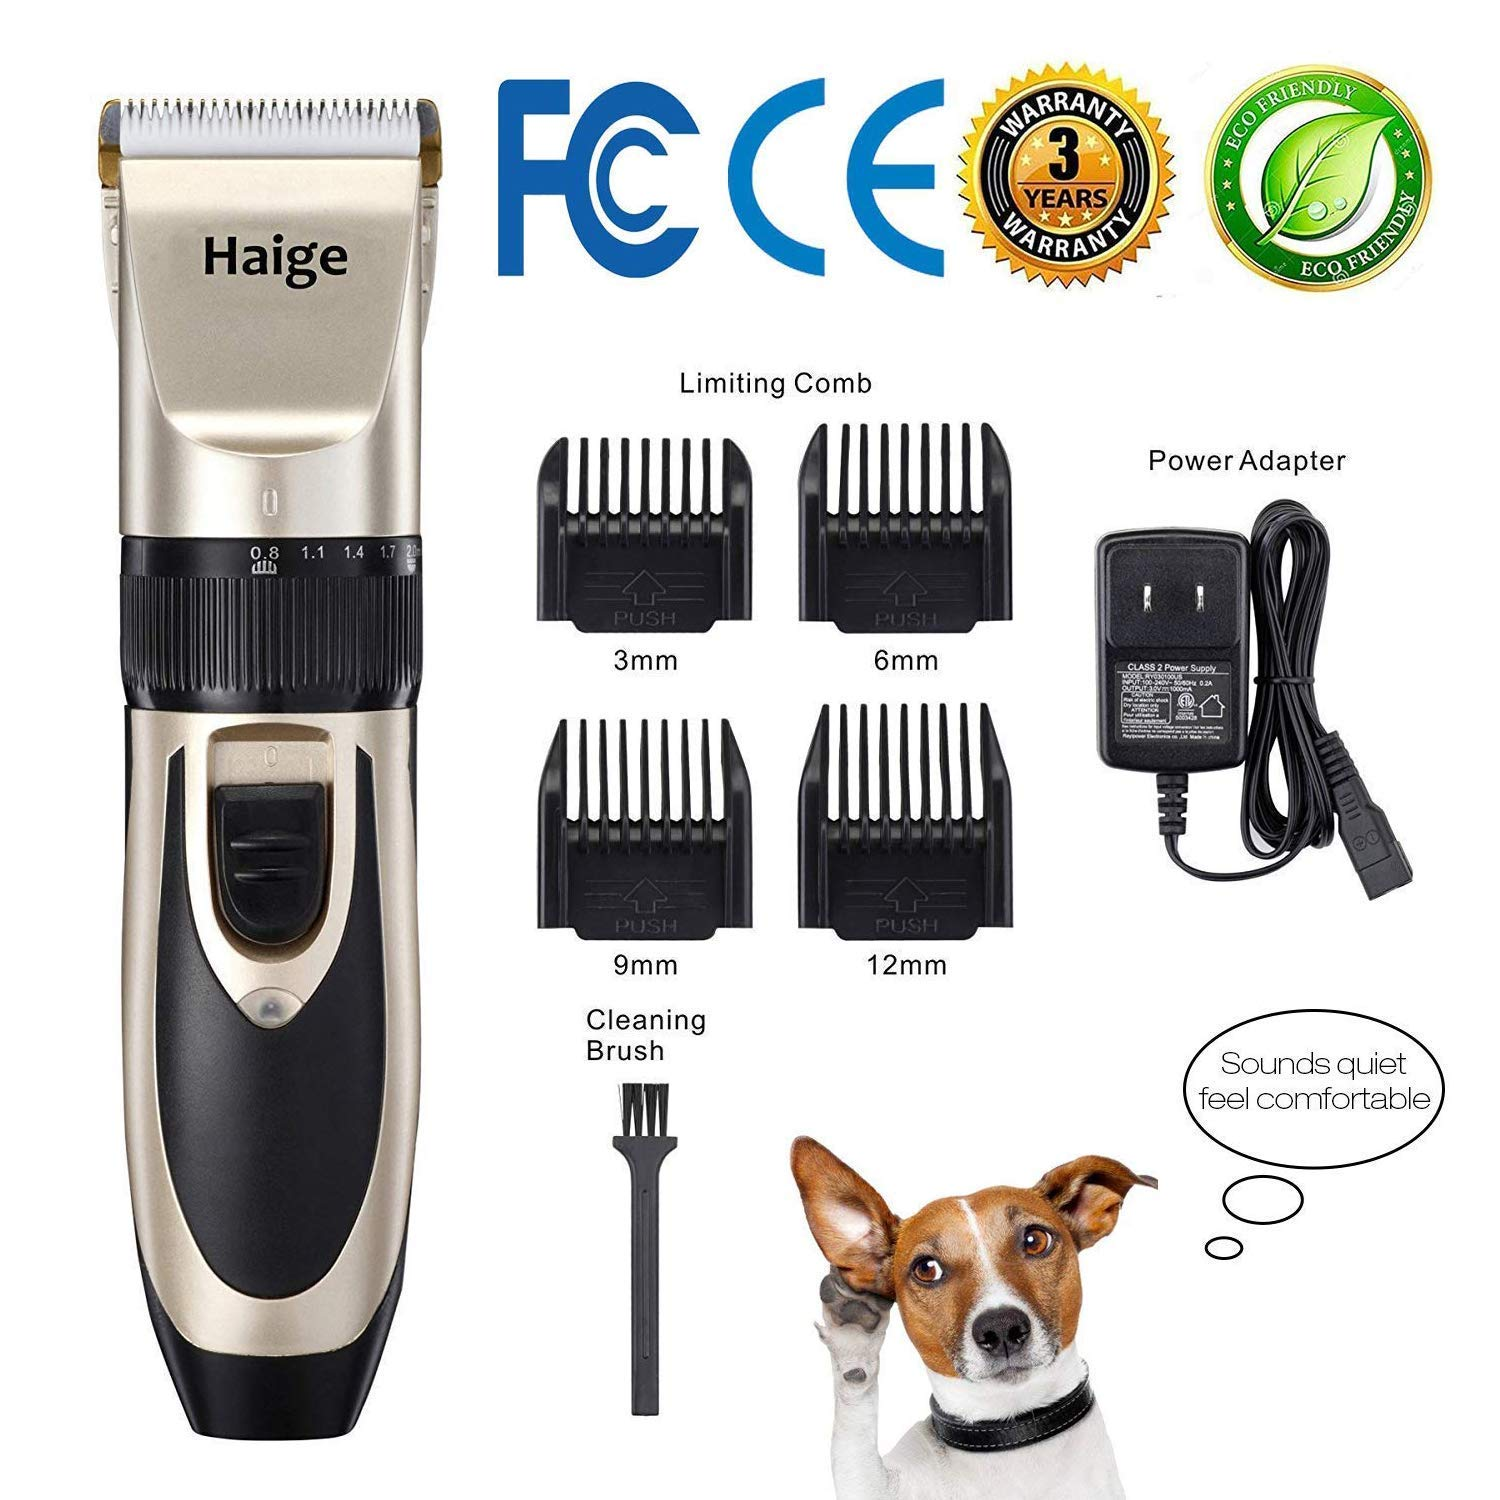 Haige Pet Your Pet Nanny Dog Shaver Clippers Low Noise Rechargeable Cordless Electric Quiet Hair Clippers Set for Dogs Cats Pets